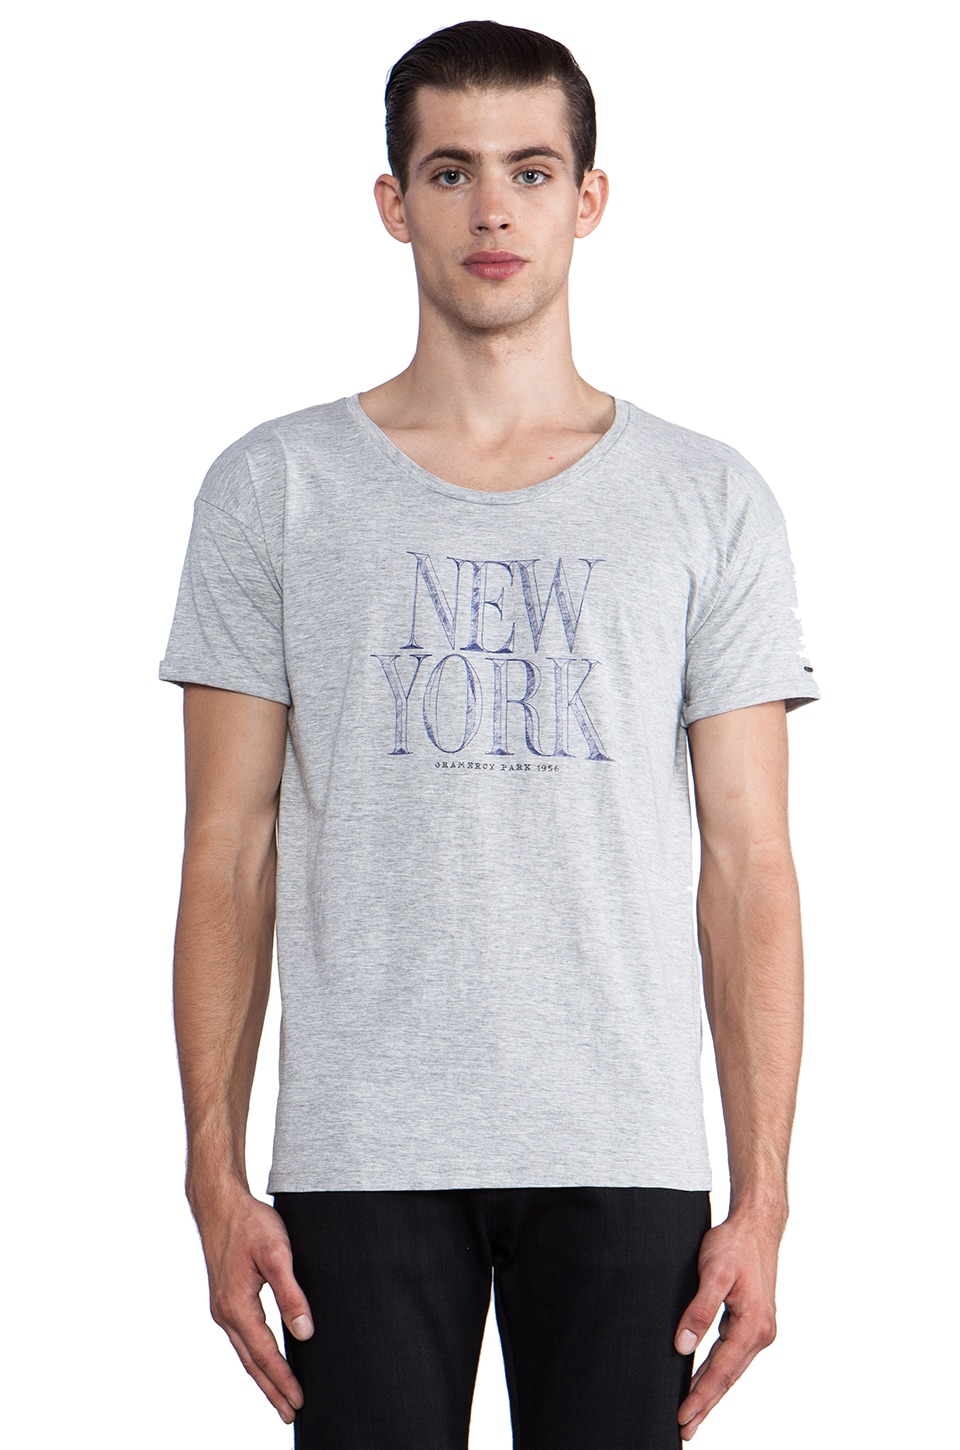 Scotch & Soda NY Tee in Grey Melange